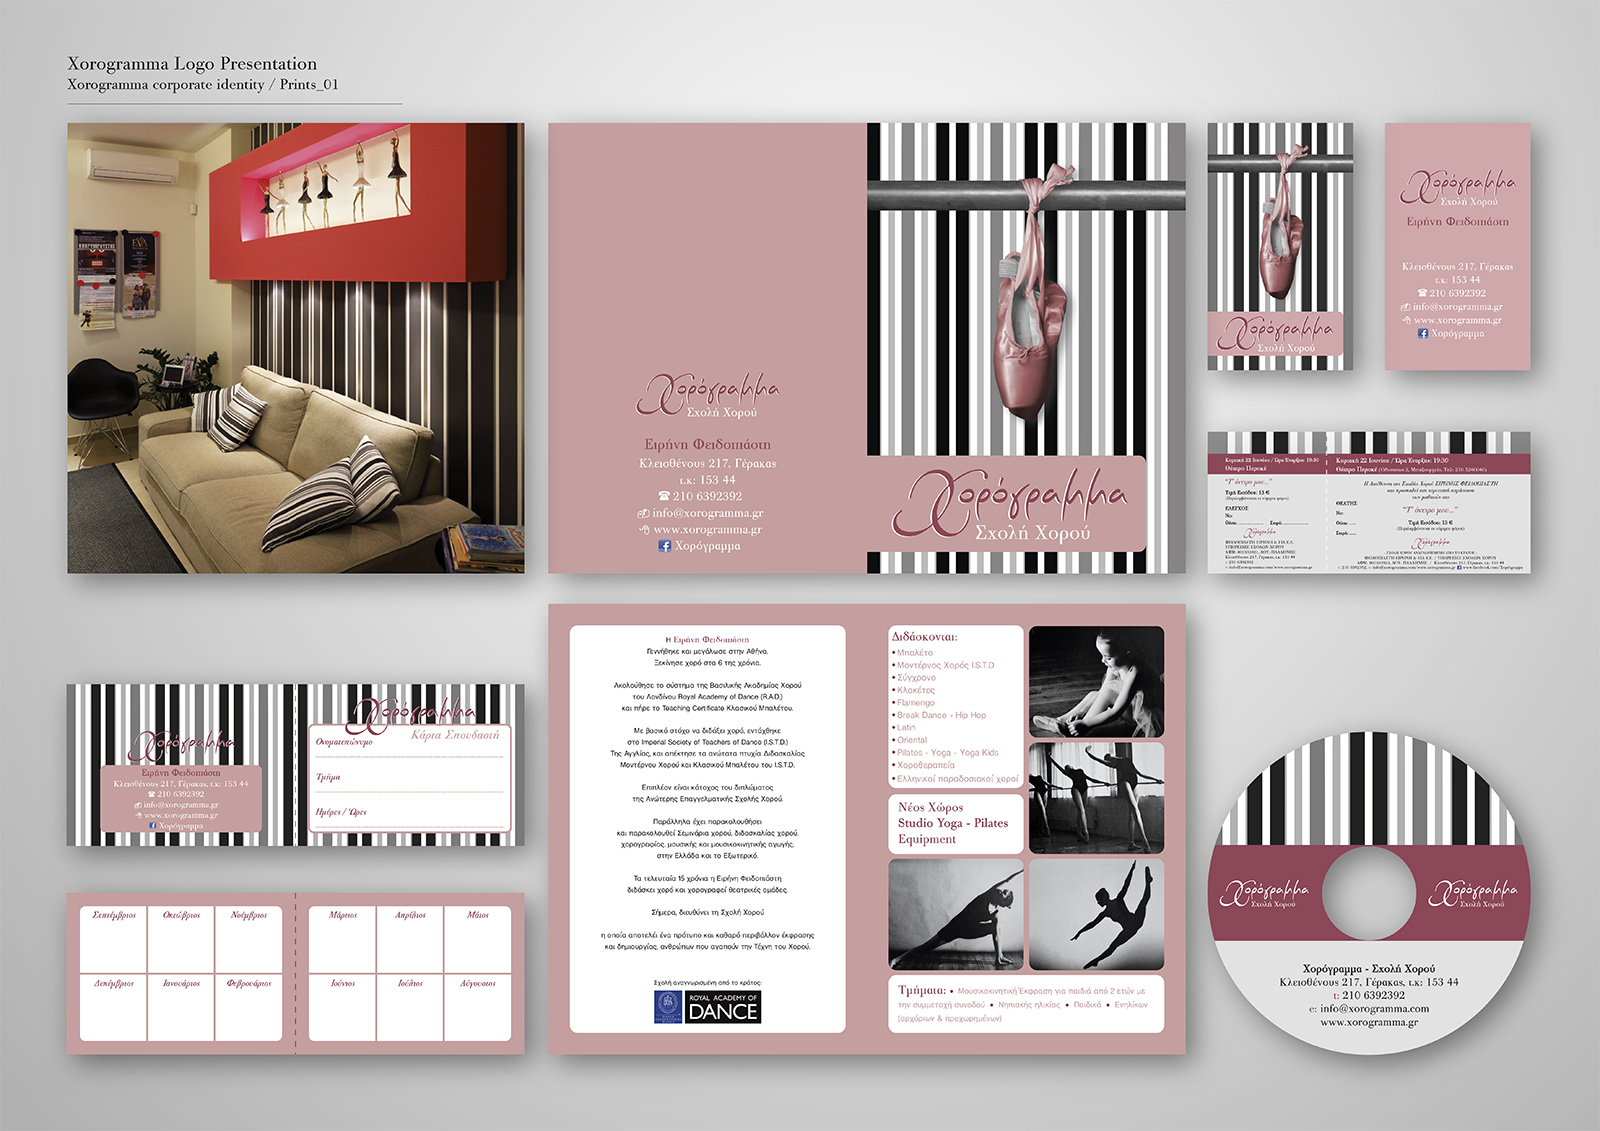 Corporate Identity Xorogramma_presentation_01_yianart